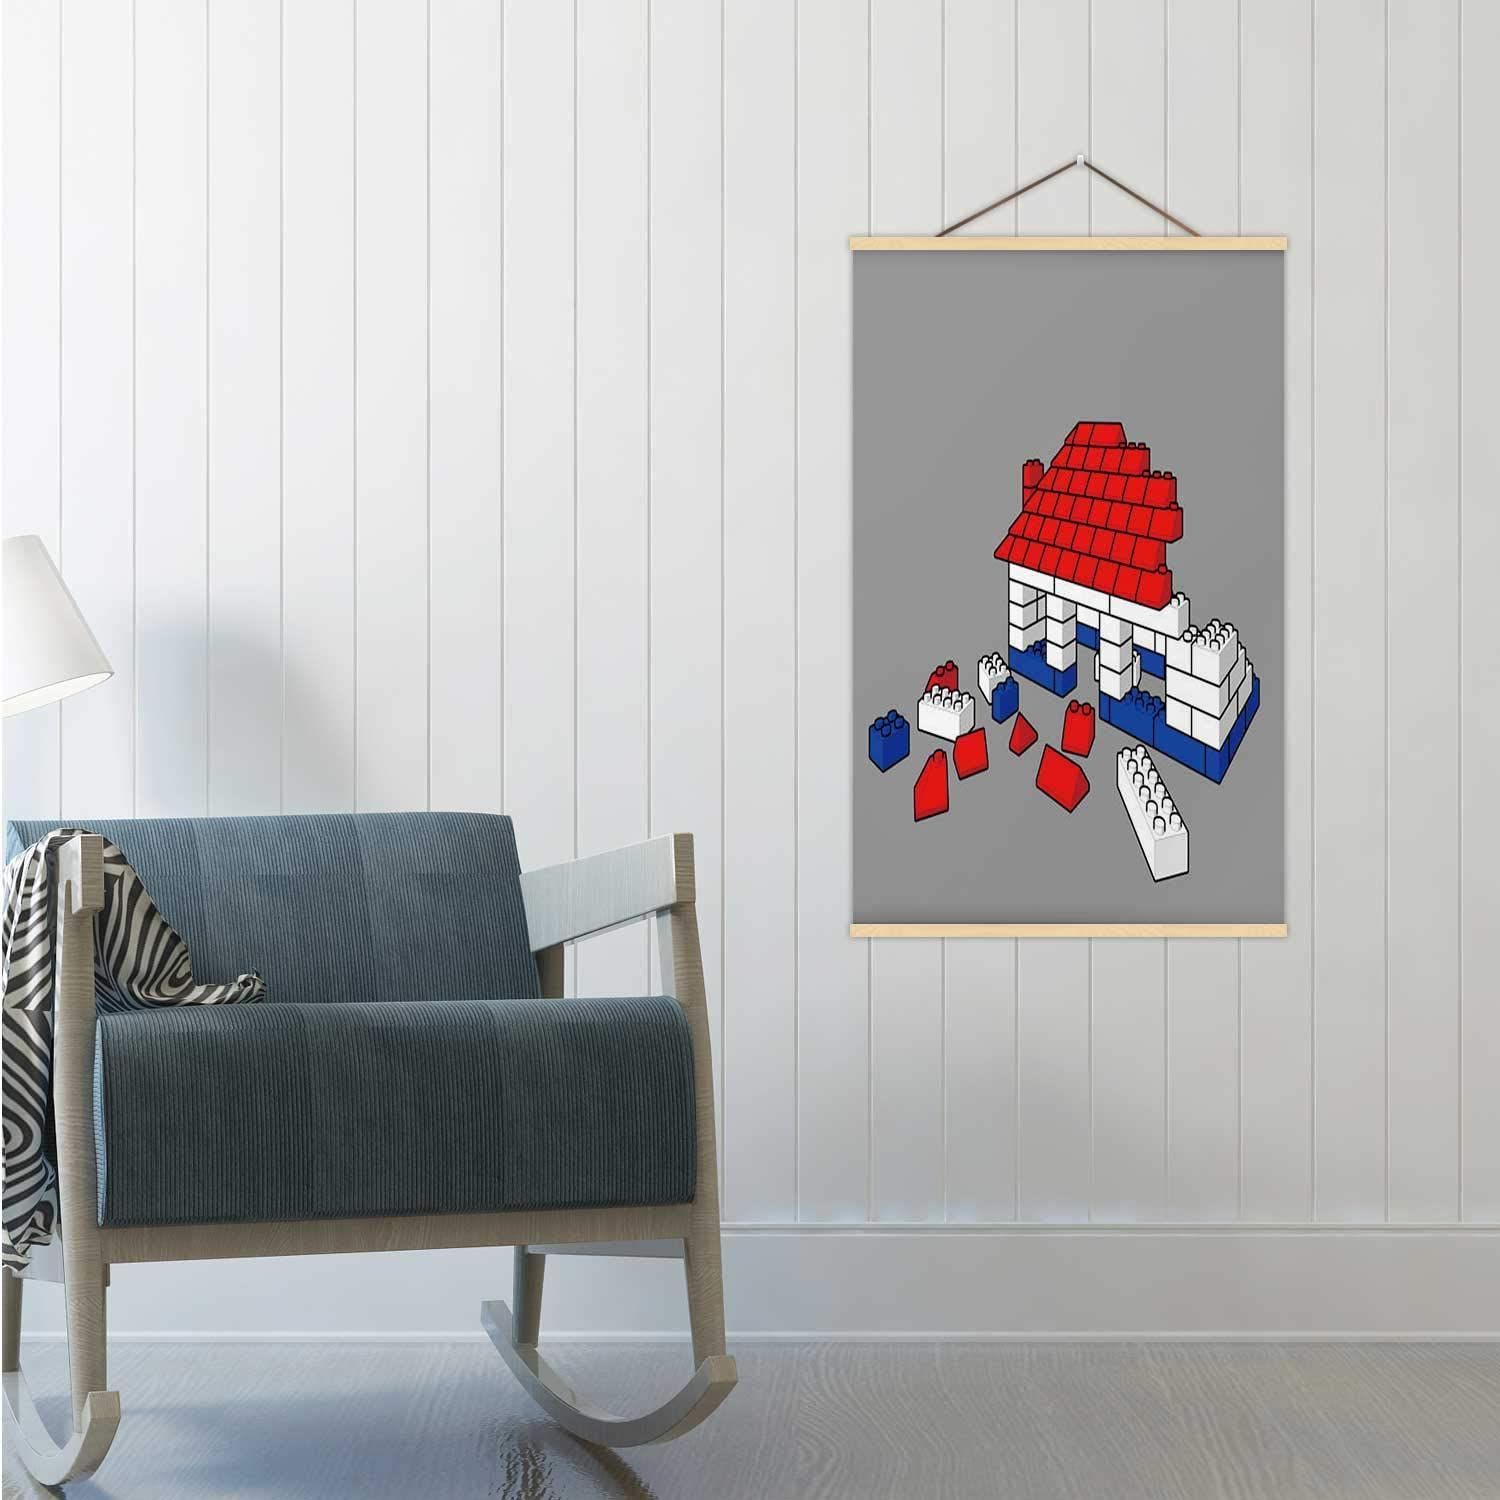 Hitecera Building a Toy House with Colorful Blocks - Illustration New Zealand,Poster Plastic Block Poster Frame 24x35in(WxH)